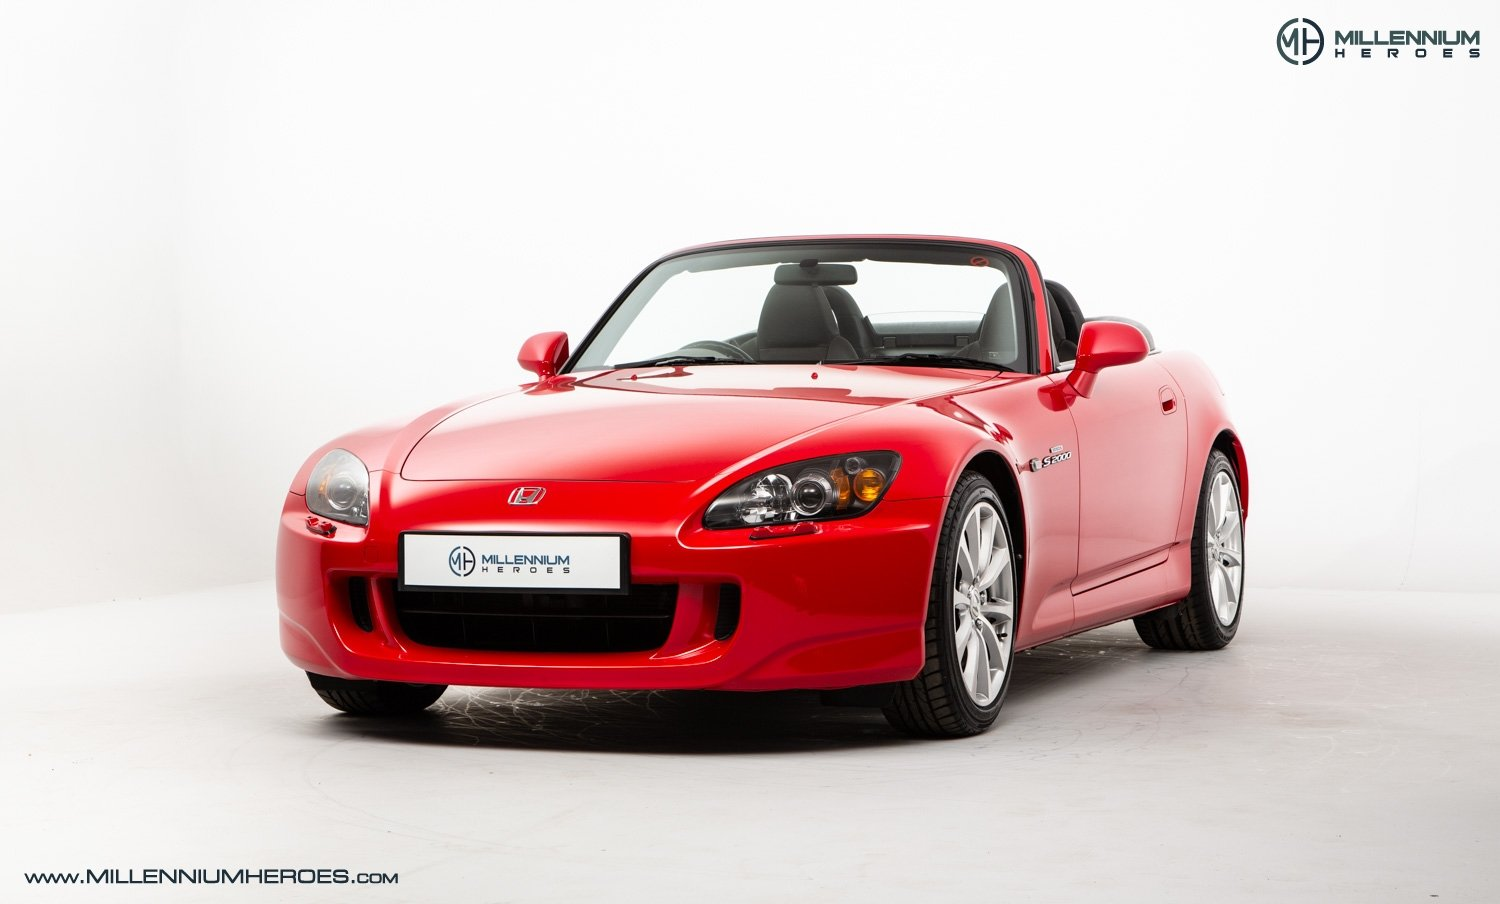 2007 HONDA S2000  For Sale (picture 1 of 21)